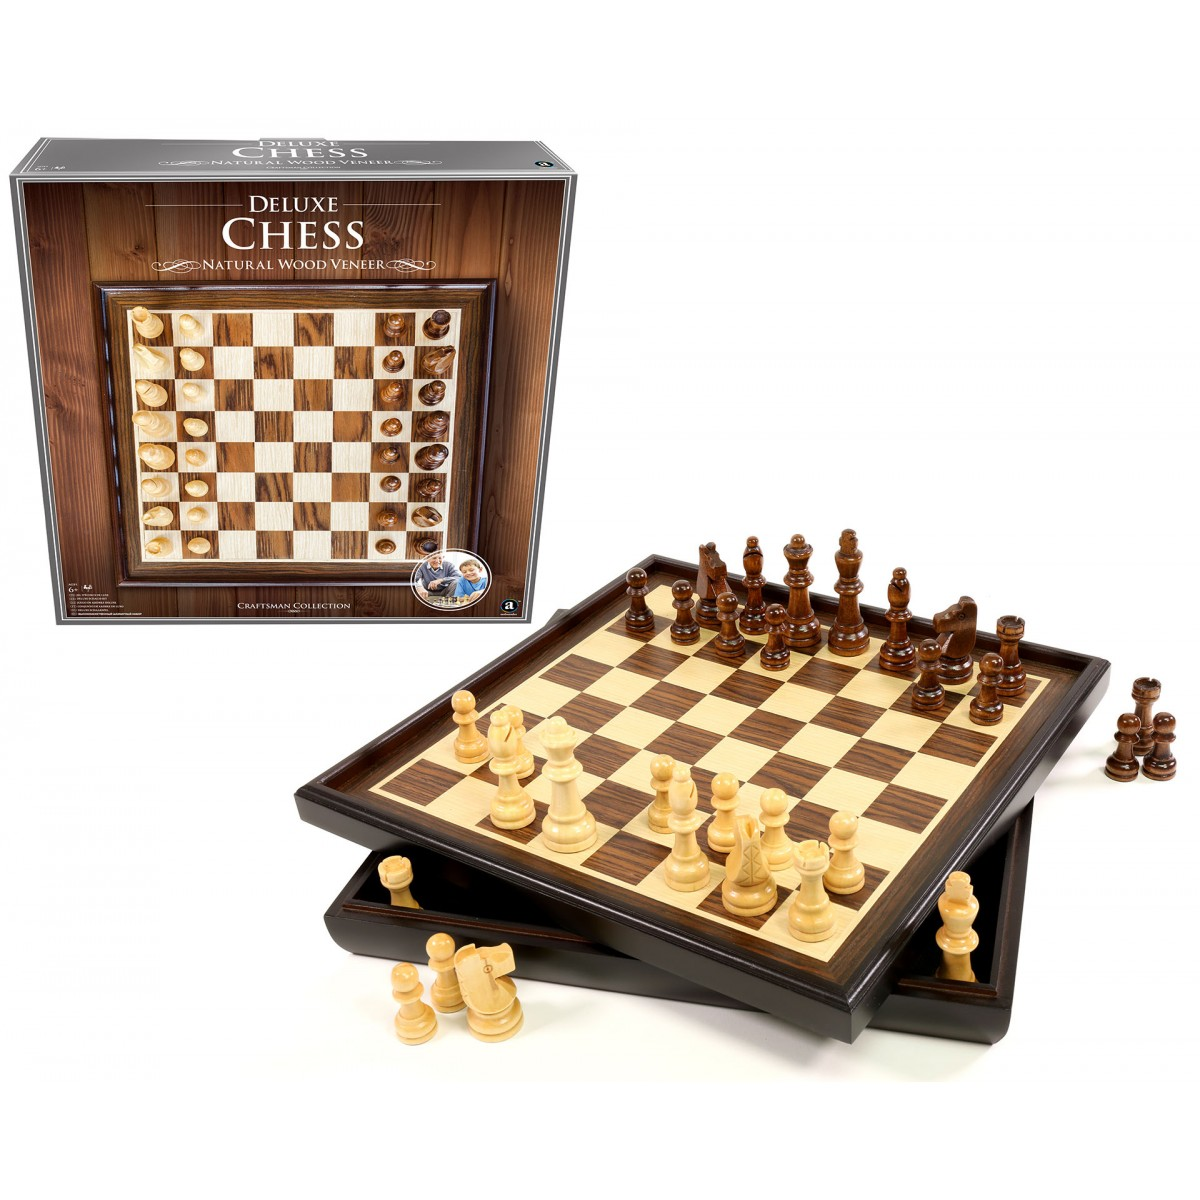 Craftsman natural wood veneer deluxe chess set - Deluxe chess sets ...